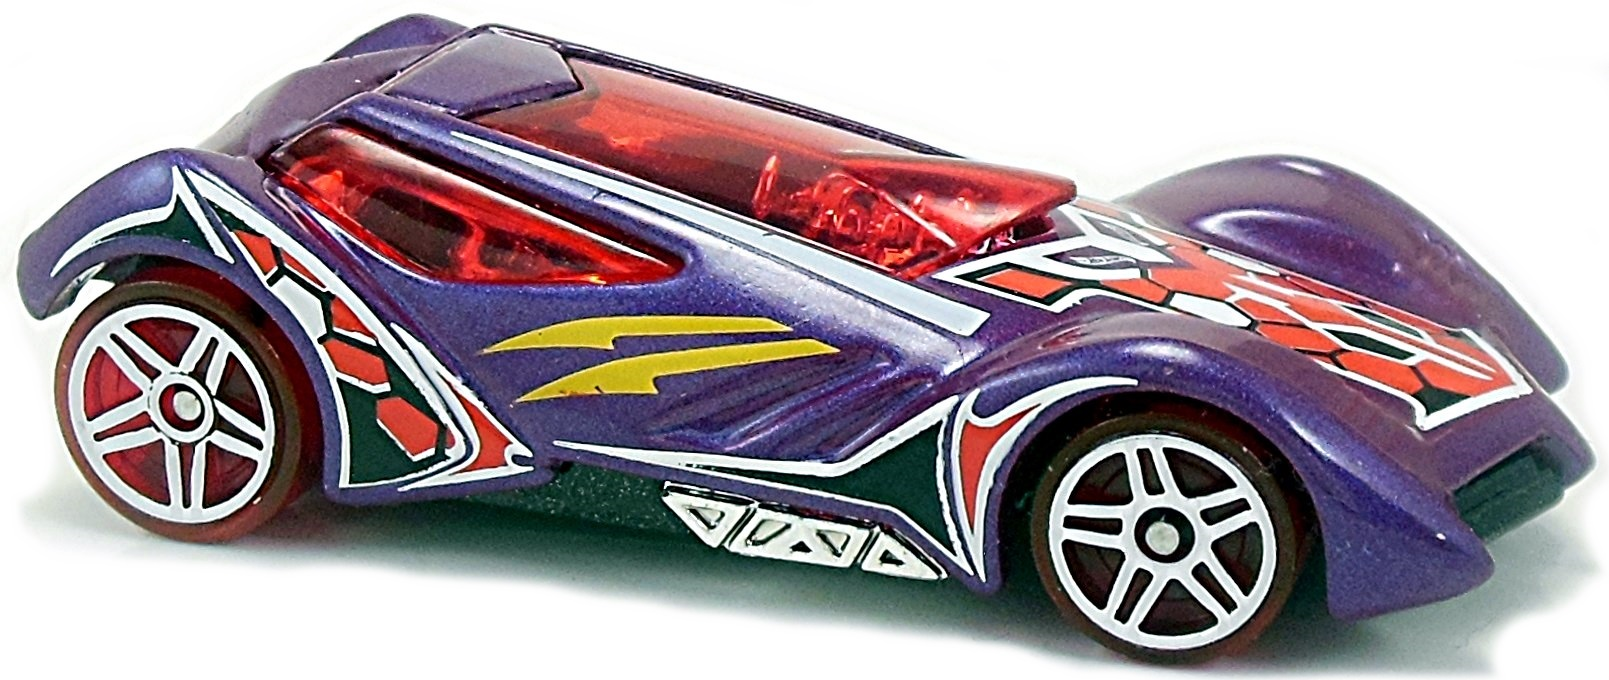 2009 Hot Wheels ~MYSTERY~ Mystery Car Chance to Get 1 of 24 Cars